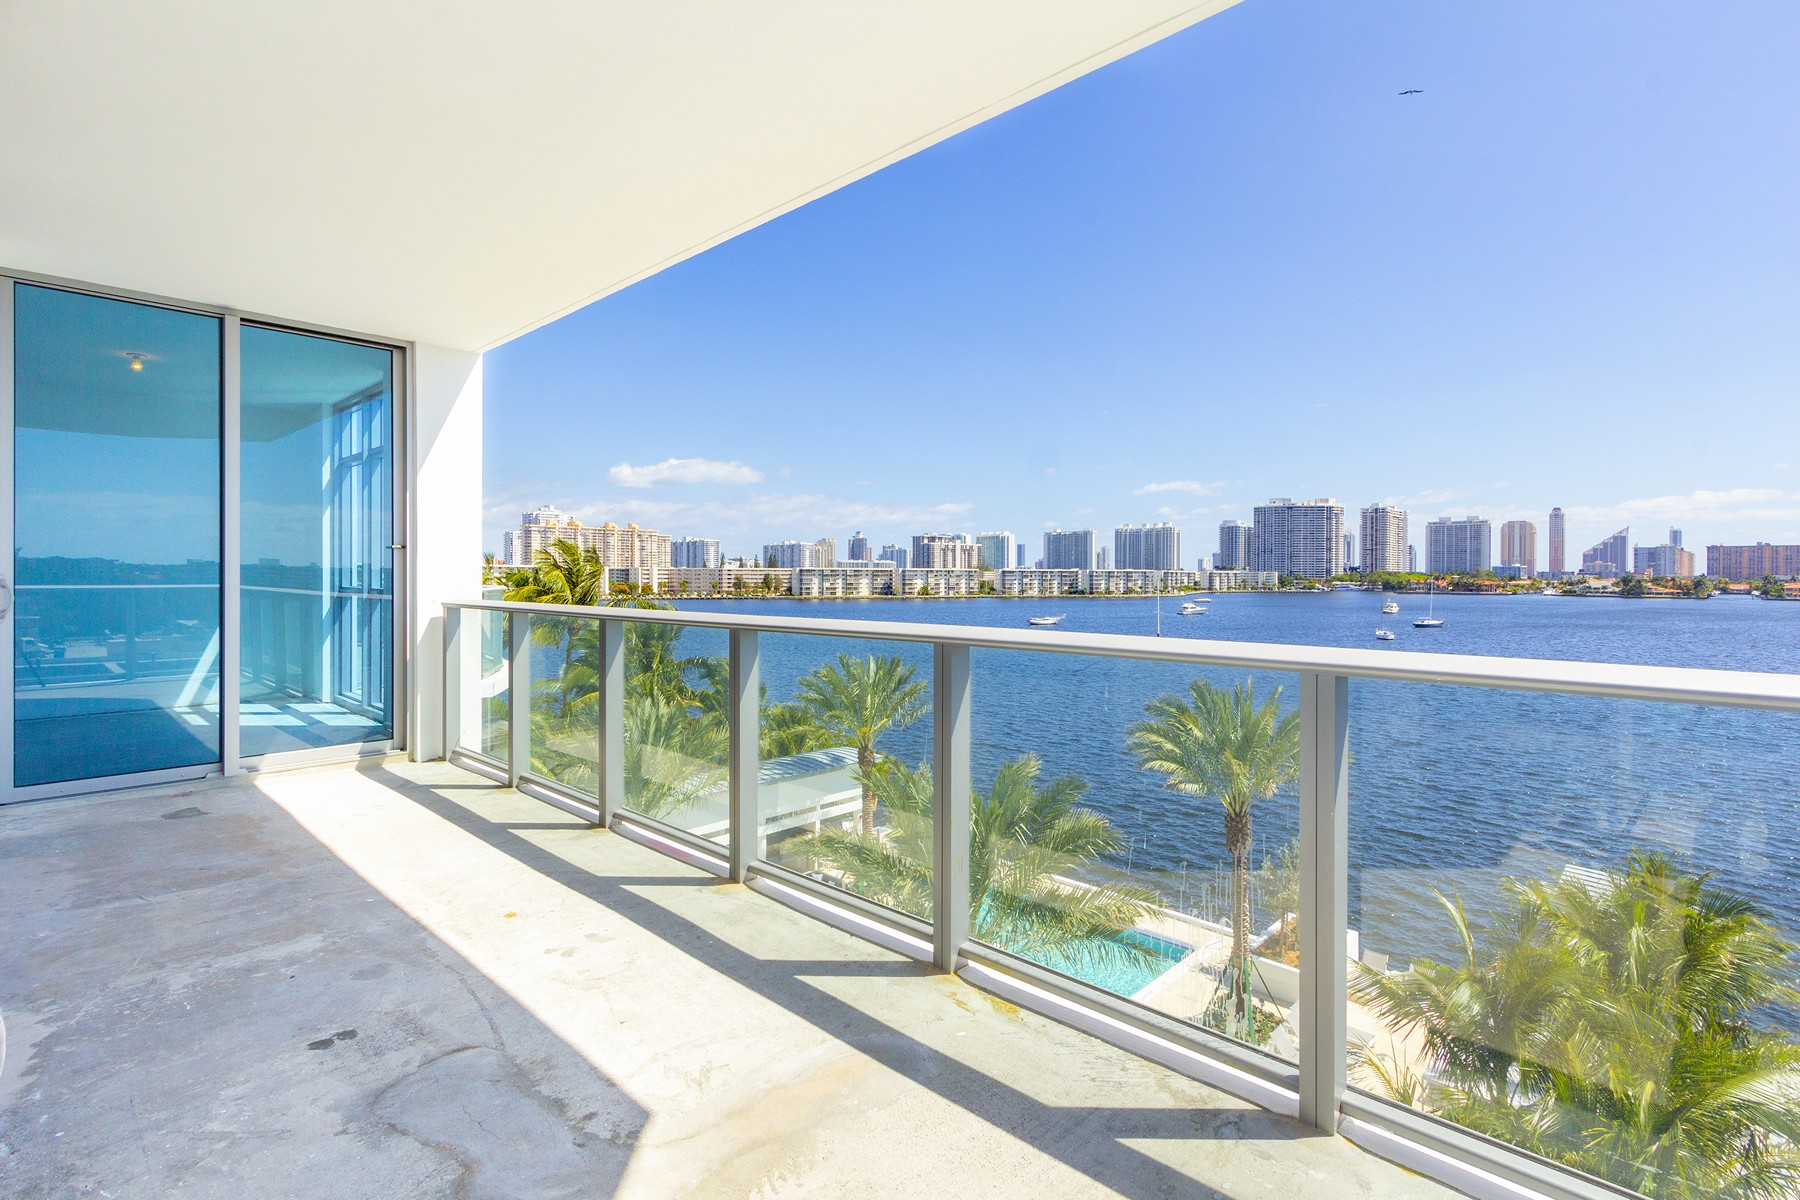 Condominiums for Sale at 17301 Biscayne Blvd #409 17301 Biscayne Blvd 409, Aventura, Florida 33160 United States